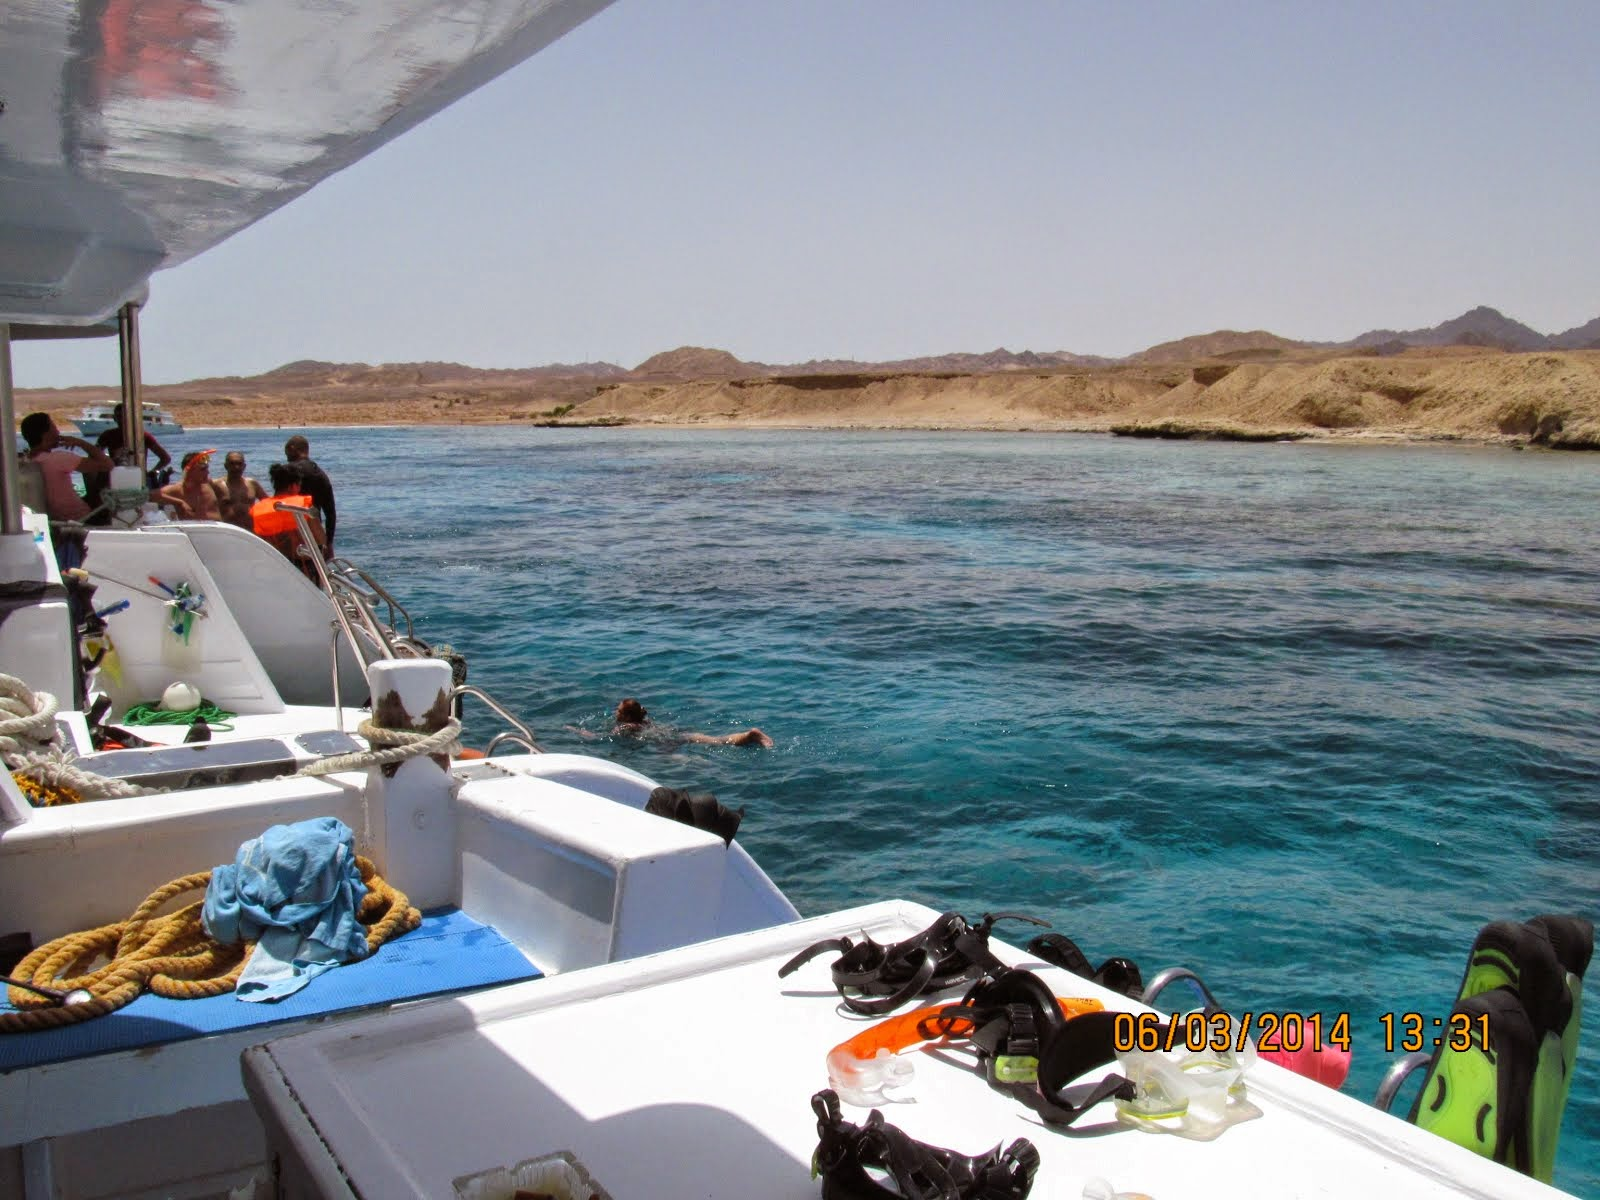 Ras Mohammed National Park & Marine Sanctuary, Sharm el Sheikh, South Sinai, Egypt